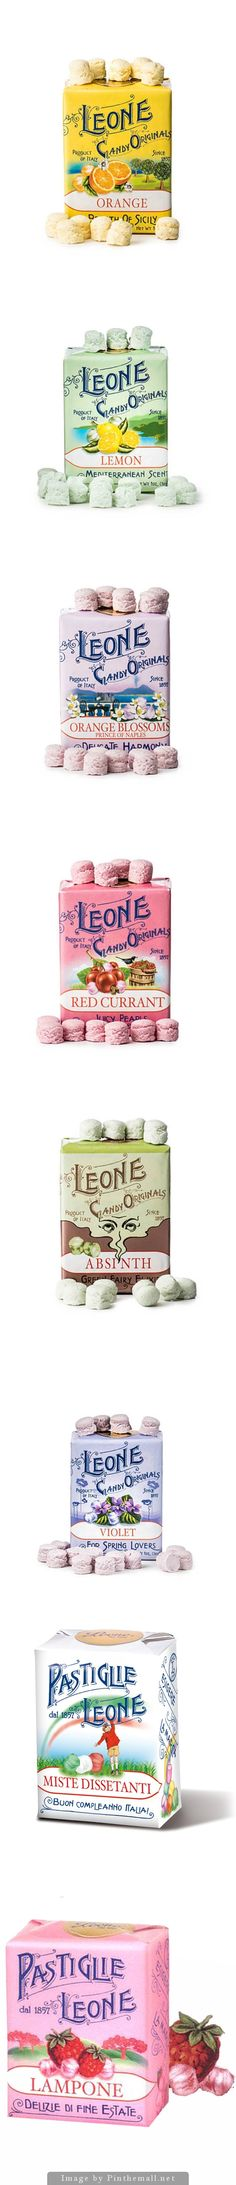 Leone Candies does creative, whimsical things with each flavor